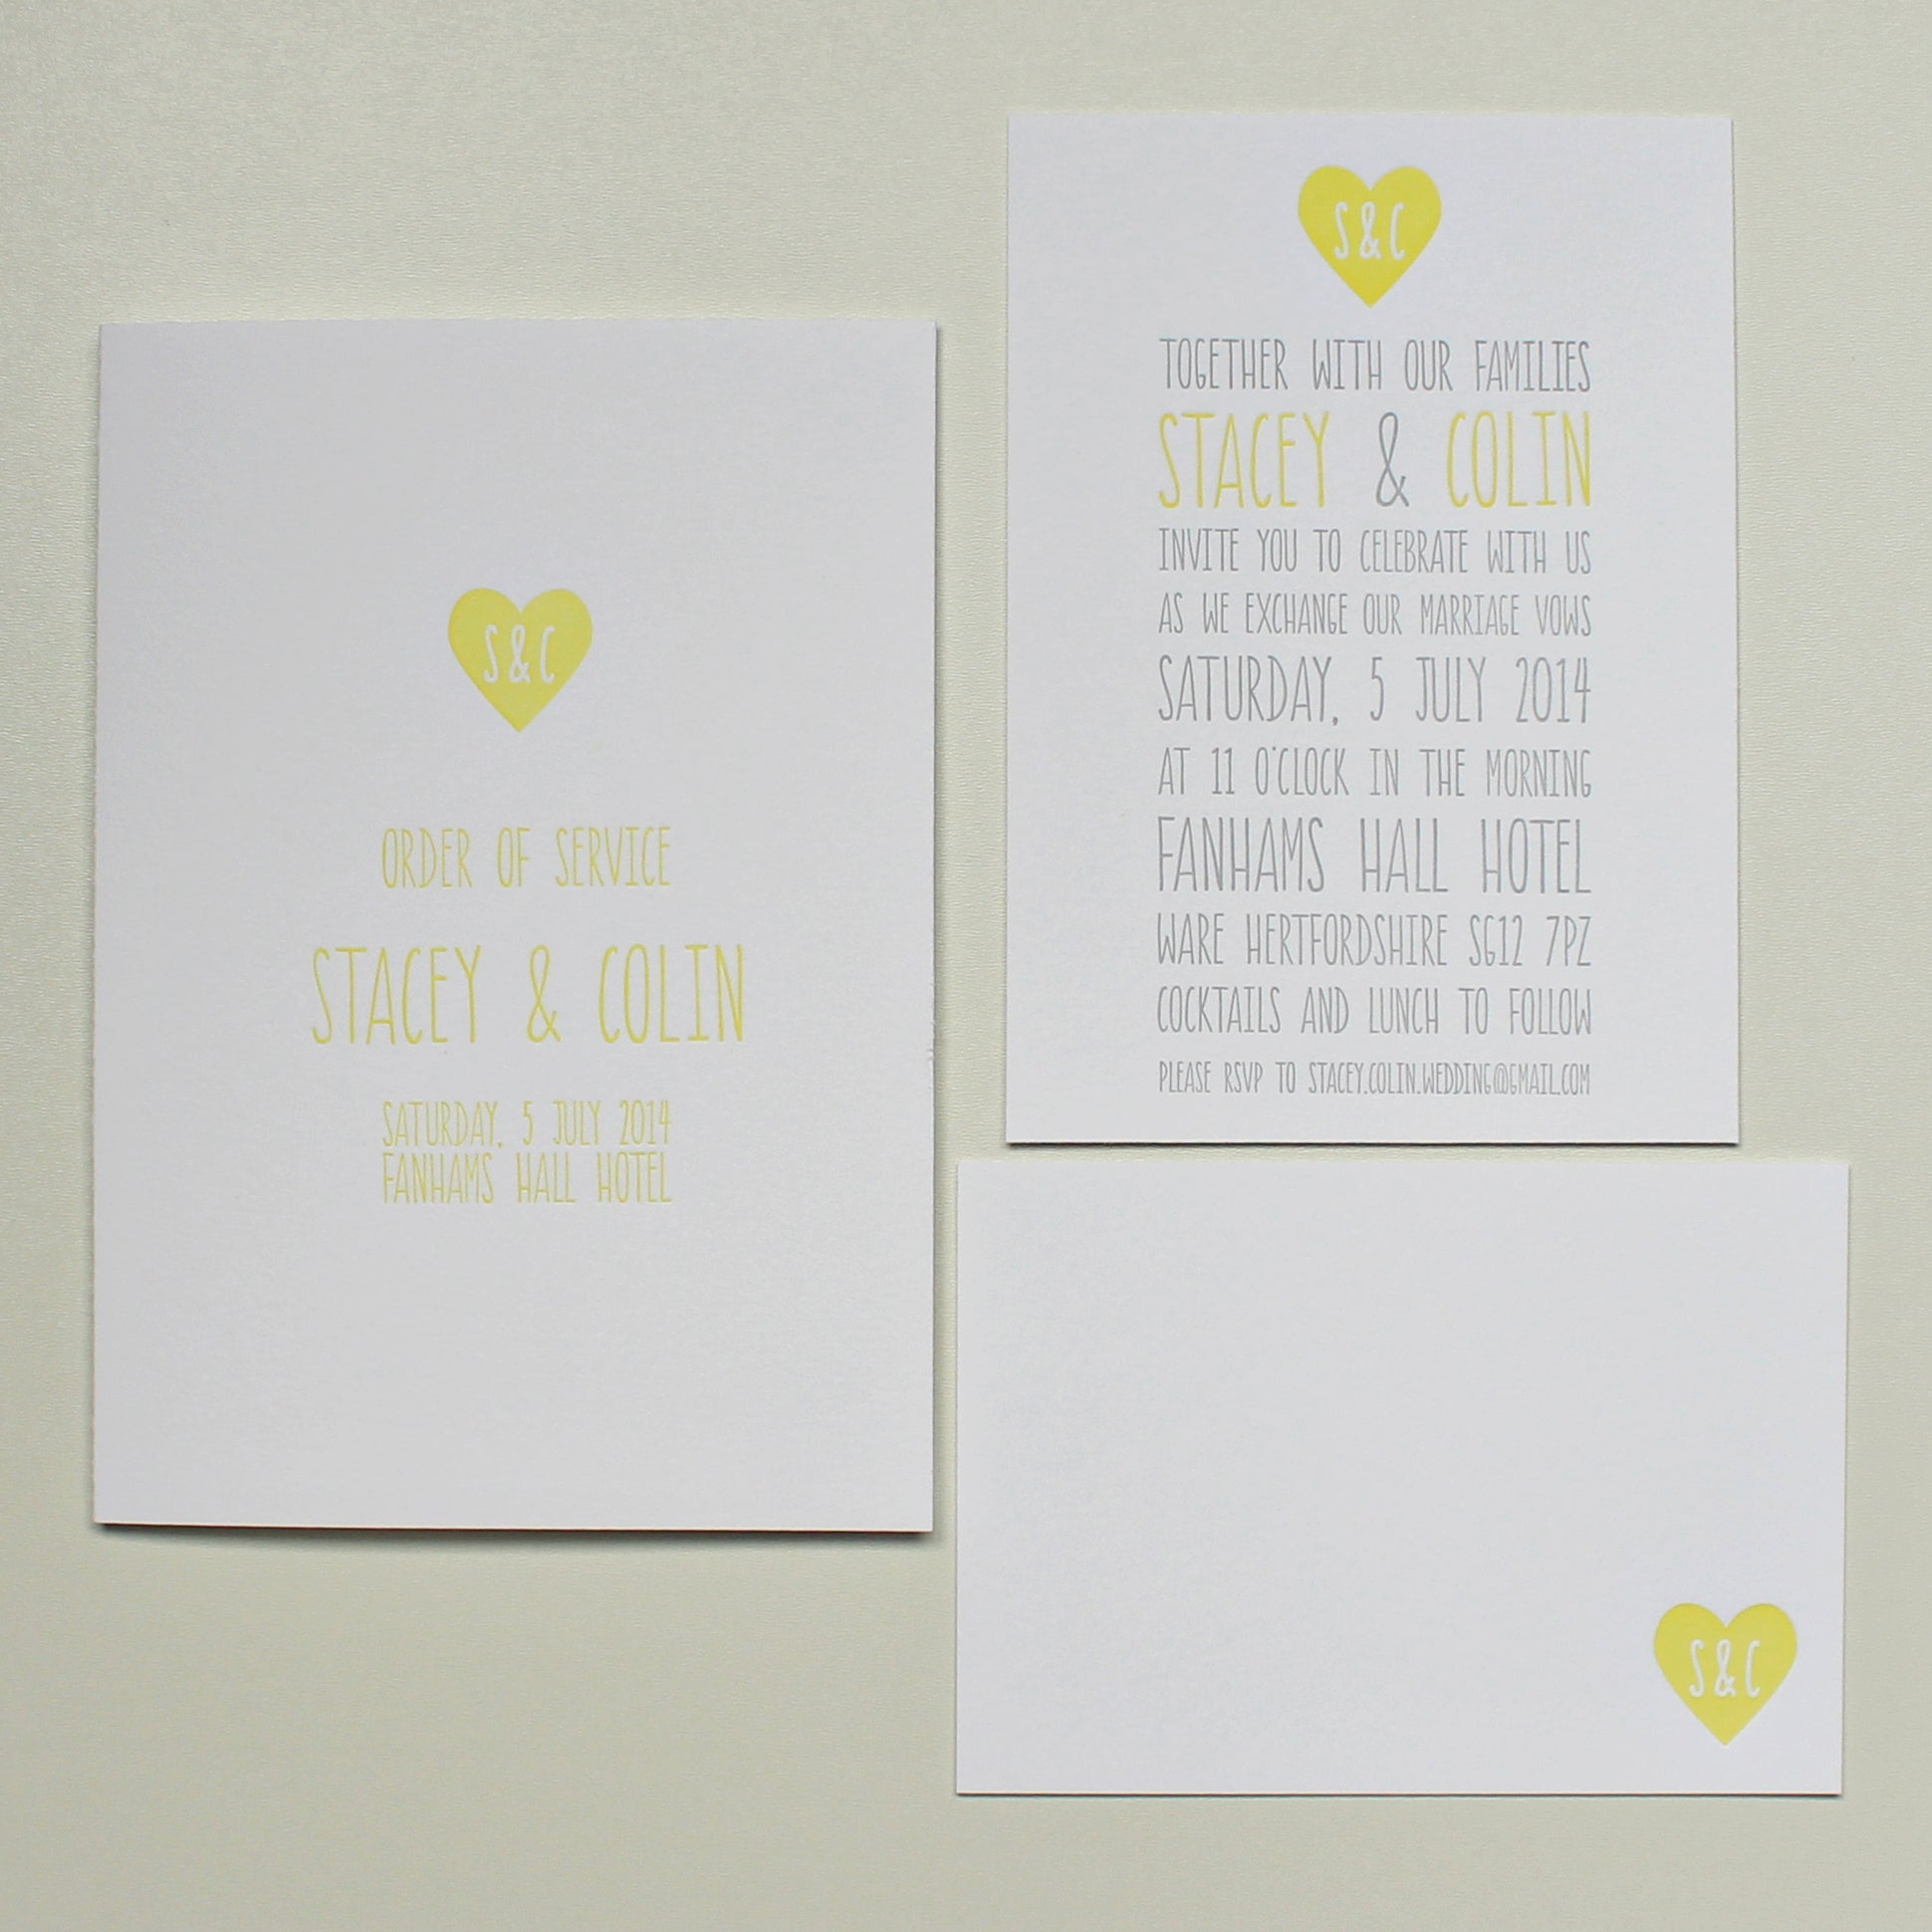 Cerulean Press - Couple's Heart Invitation Suite